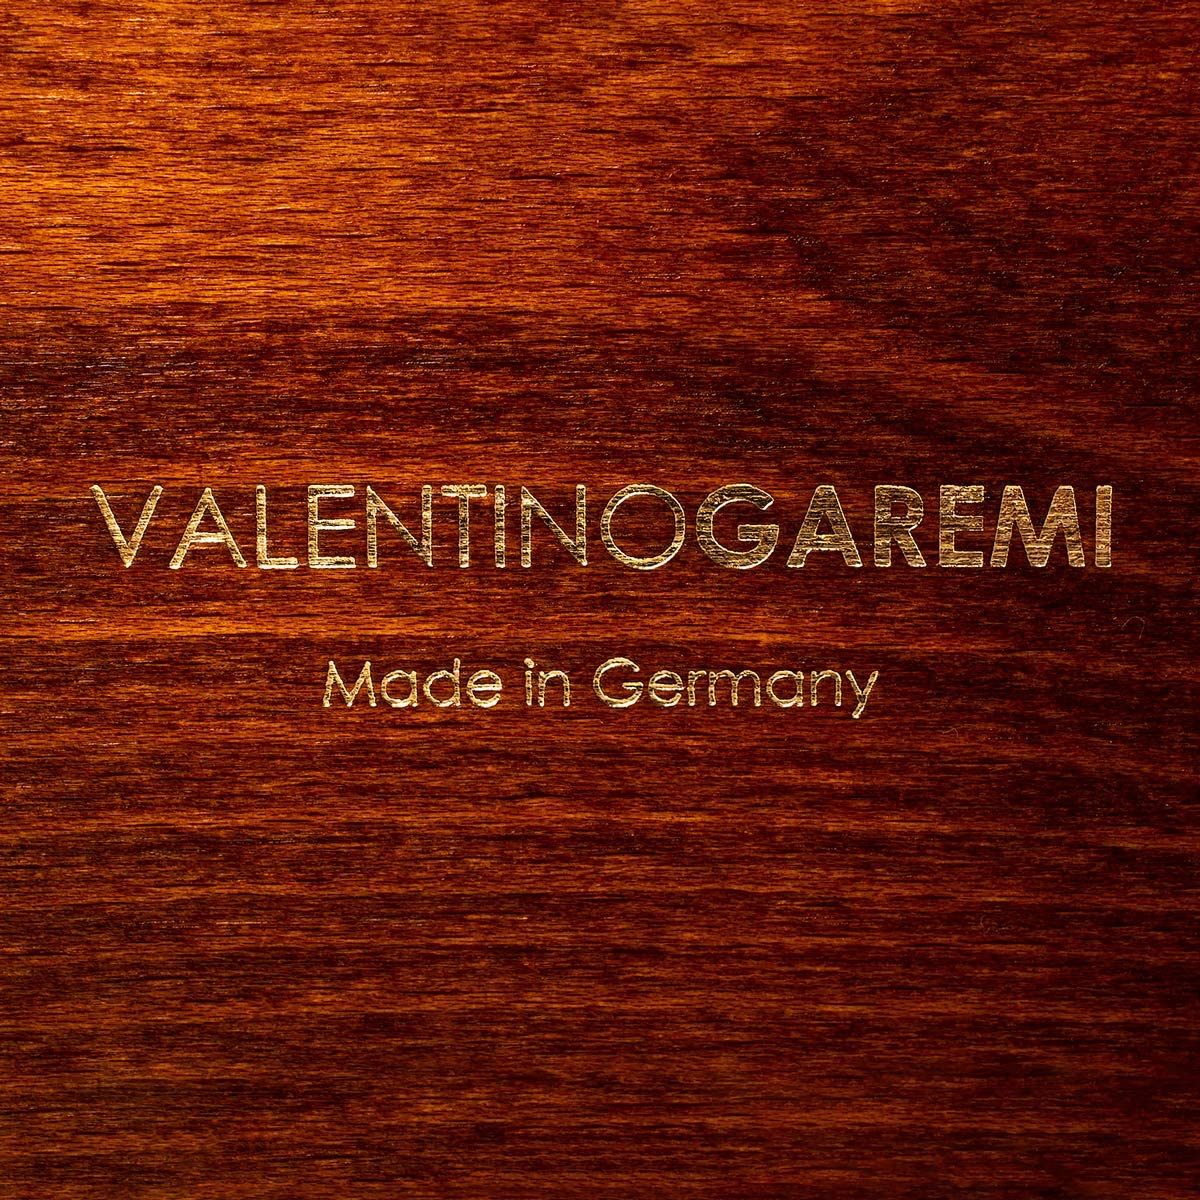 VALENTINO GAREMI Horsehair Shoe Brush Set Travel Classic Design /& Genuine Natural Materials Made in Germany Polish Shine Clean Buff Leather Shoes or Boots